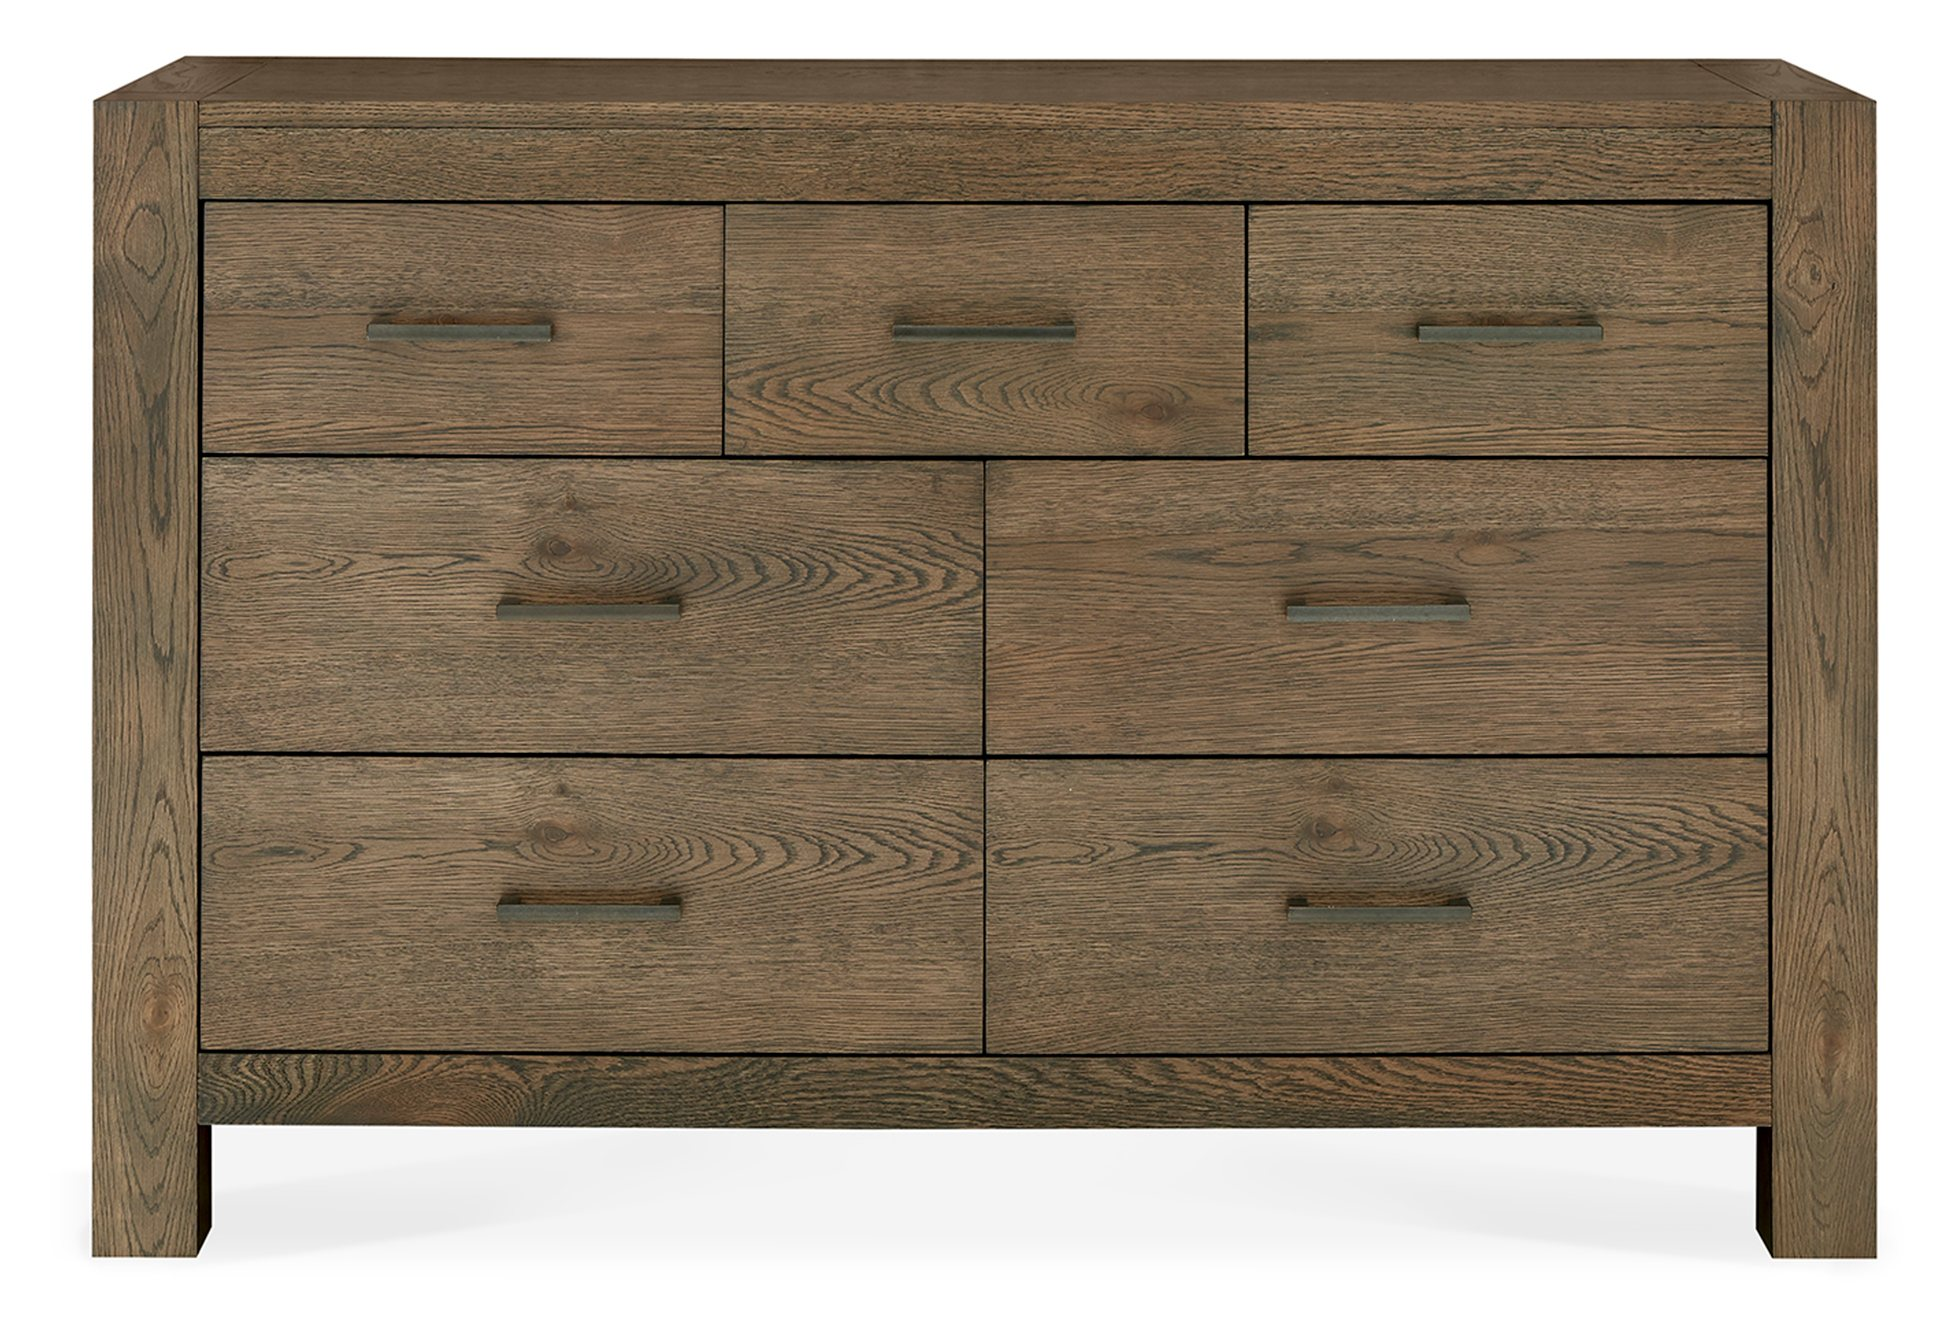 LILLE DARK OAK WIDE CHEST -FRONT DETAIL